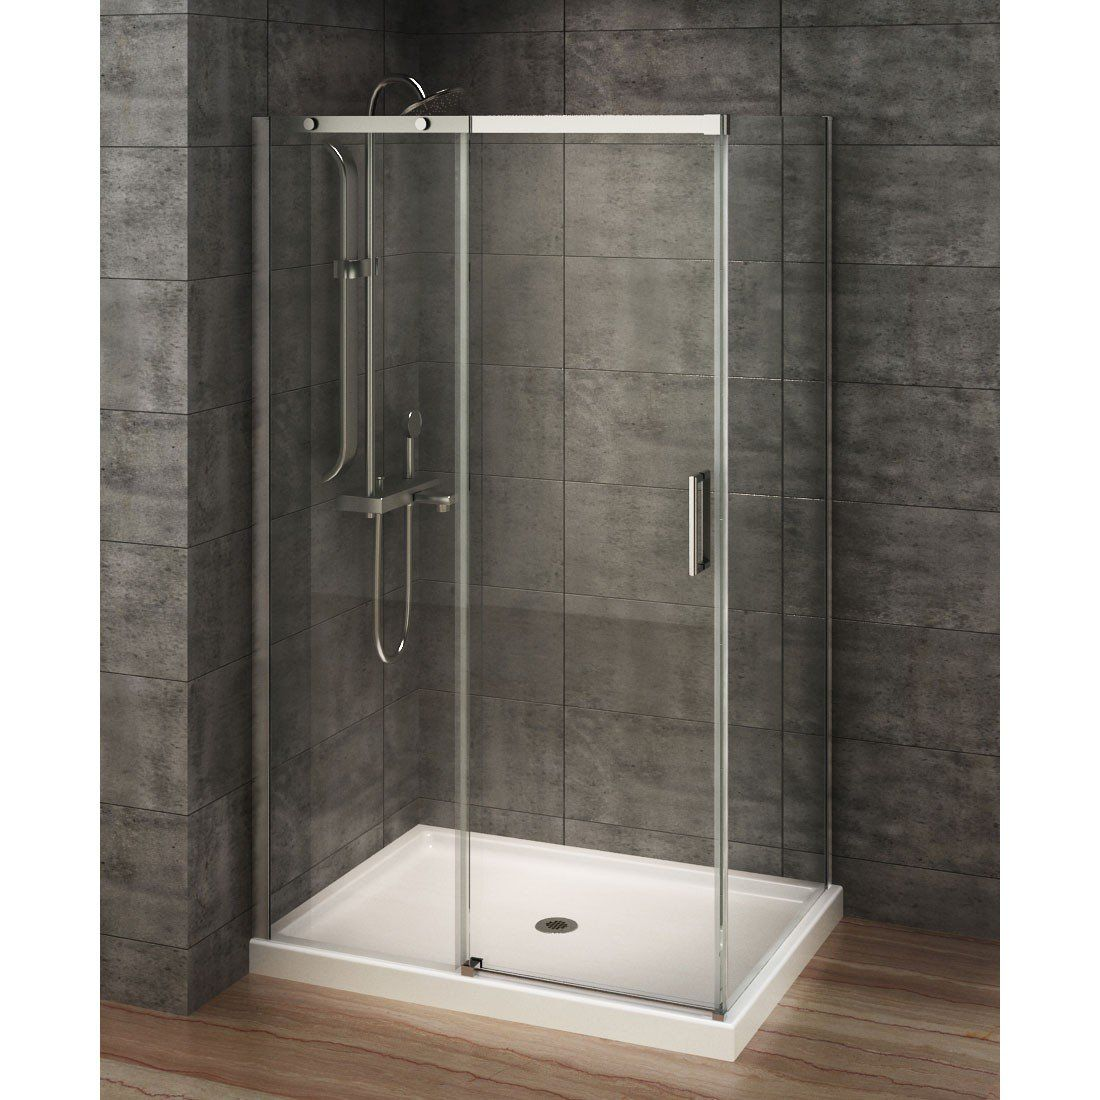 A&E Bath and Shower Berlin 48 x 32 Rectangular Corner